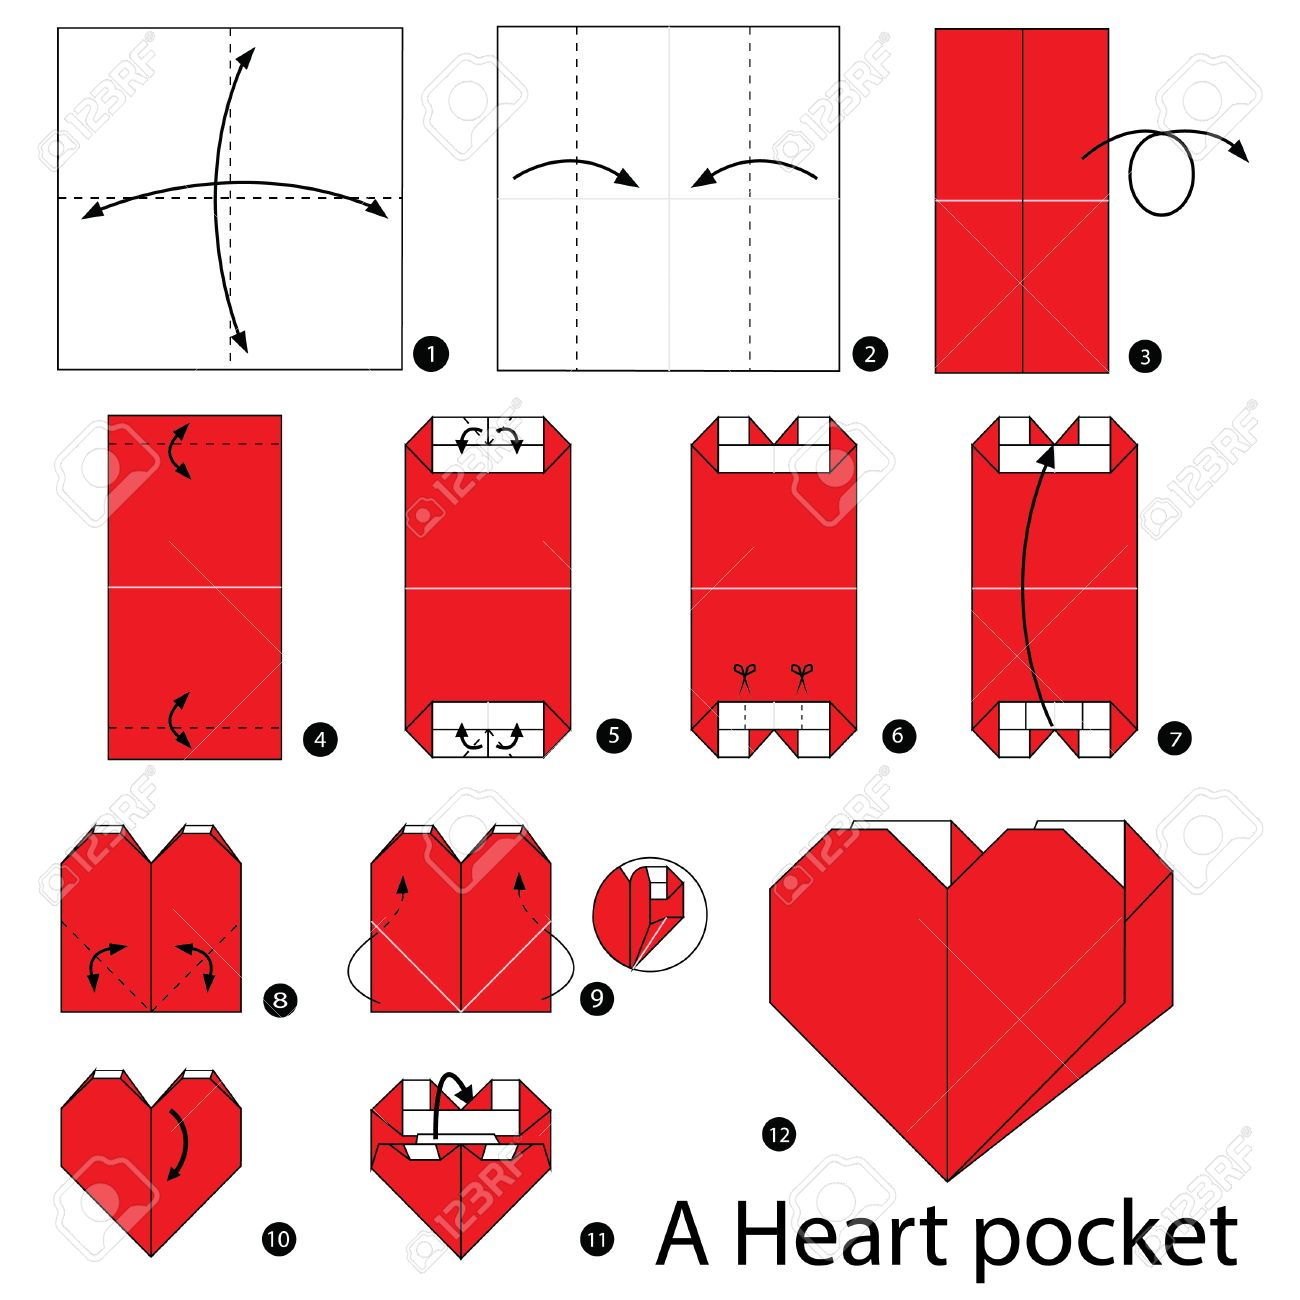 Origami Heart with Wings Instructions and Diagram | 1300x1300